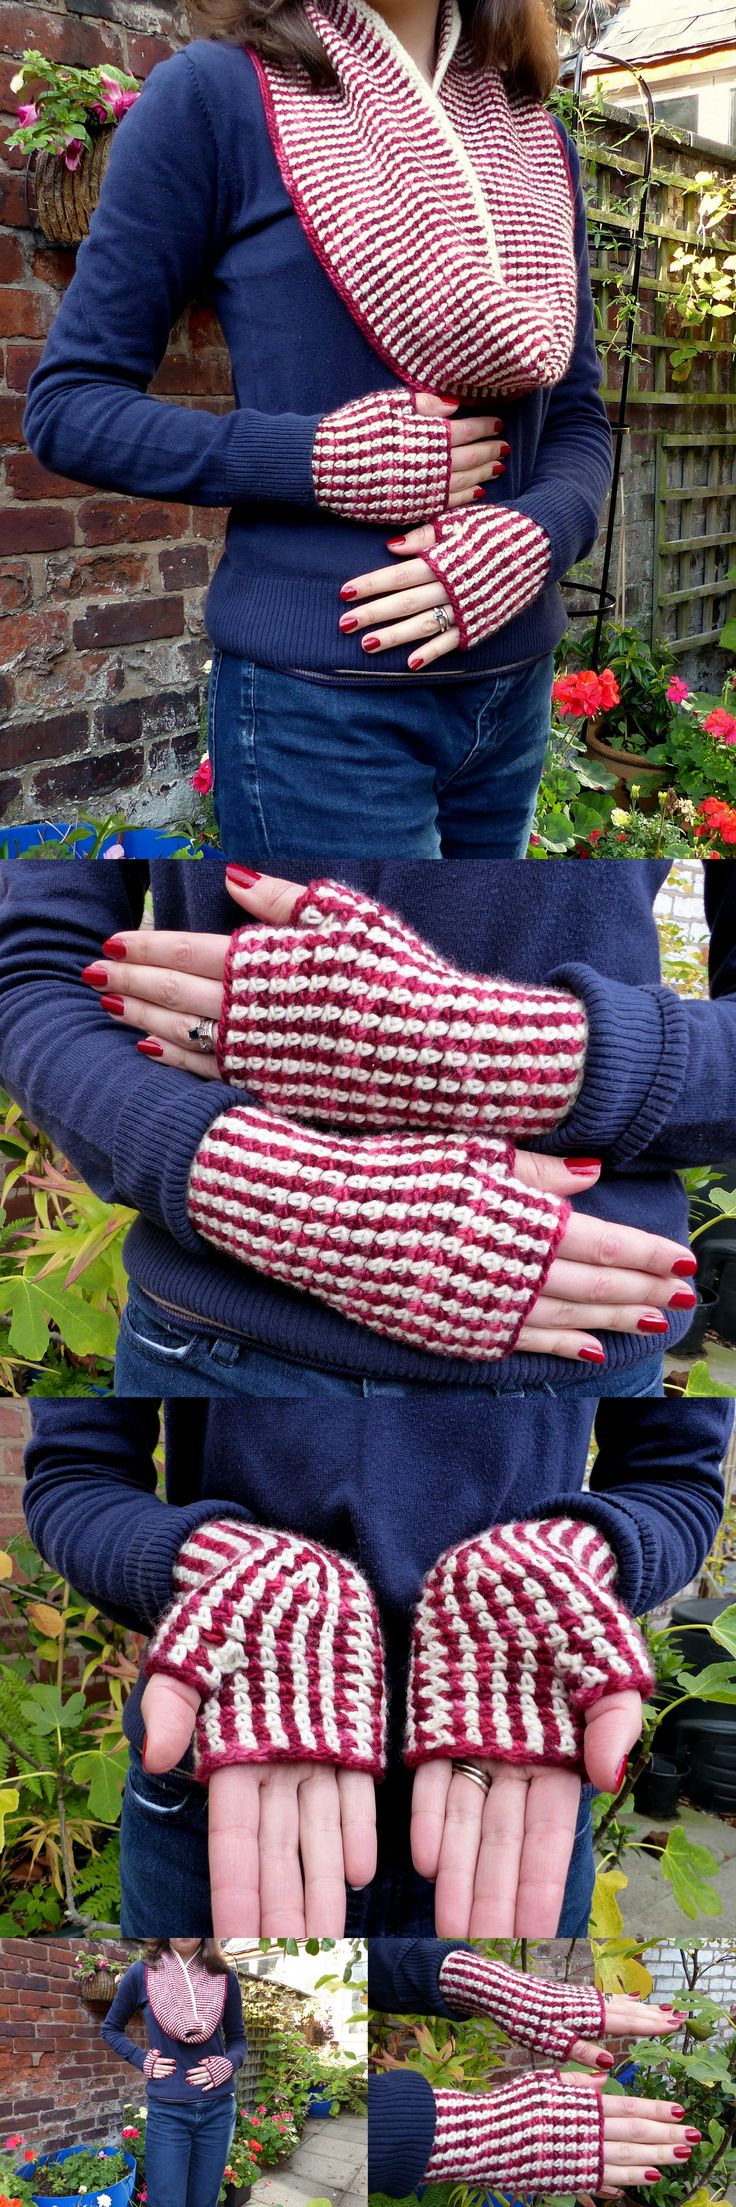 Linen Stitch Gloves and Cowl set – Free crochet patterns from Make My Day Creative